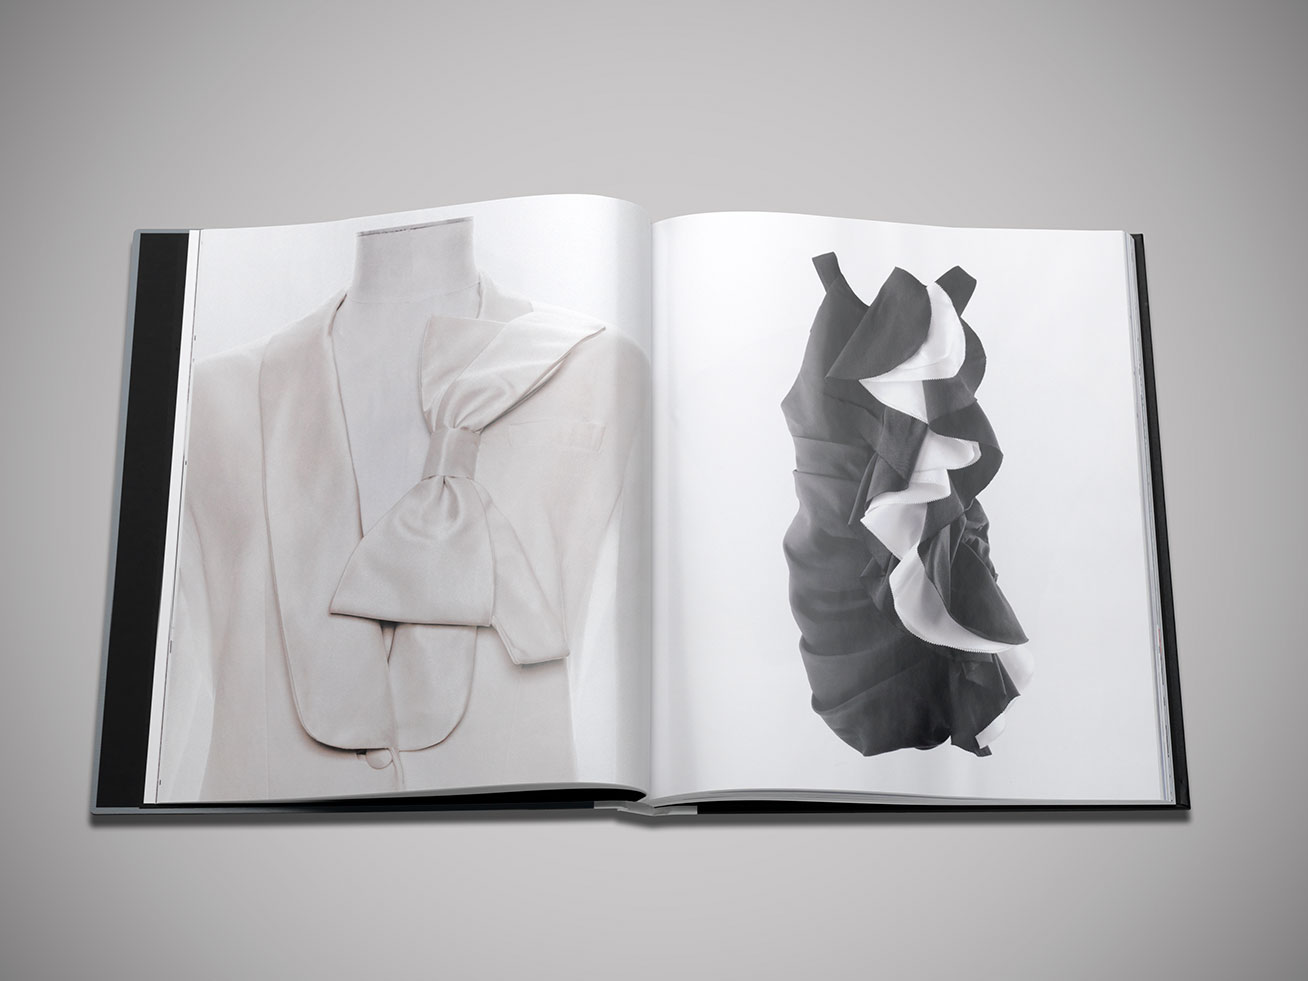 Two dressings show inside the brand book by Prabal Gurung.